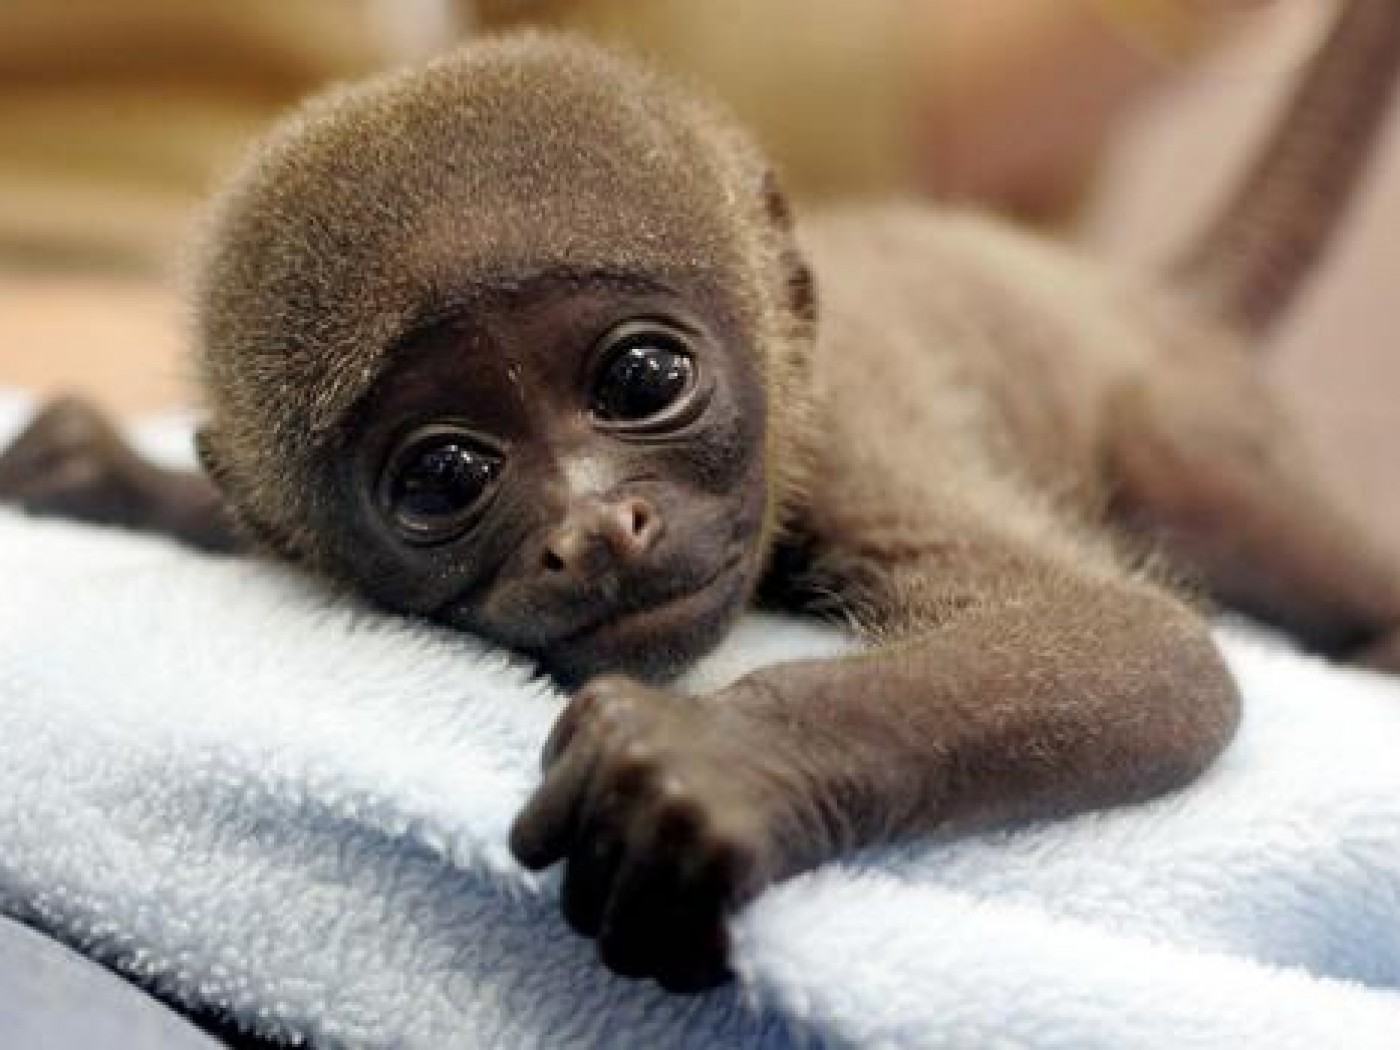 images of cute baby monkeys - photo #1